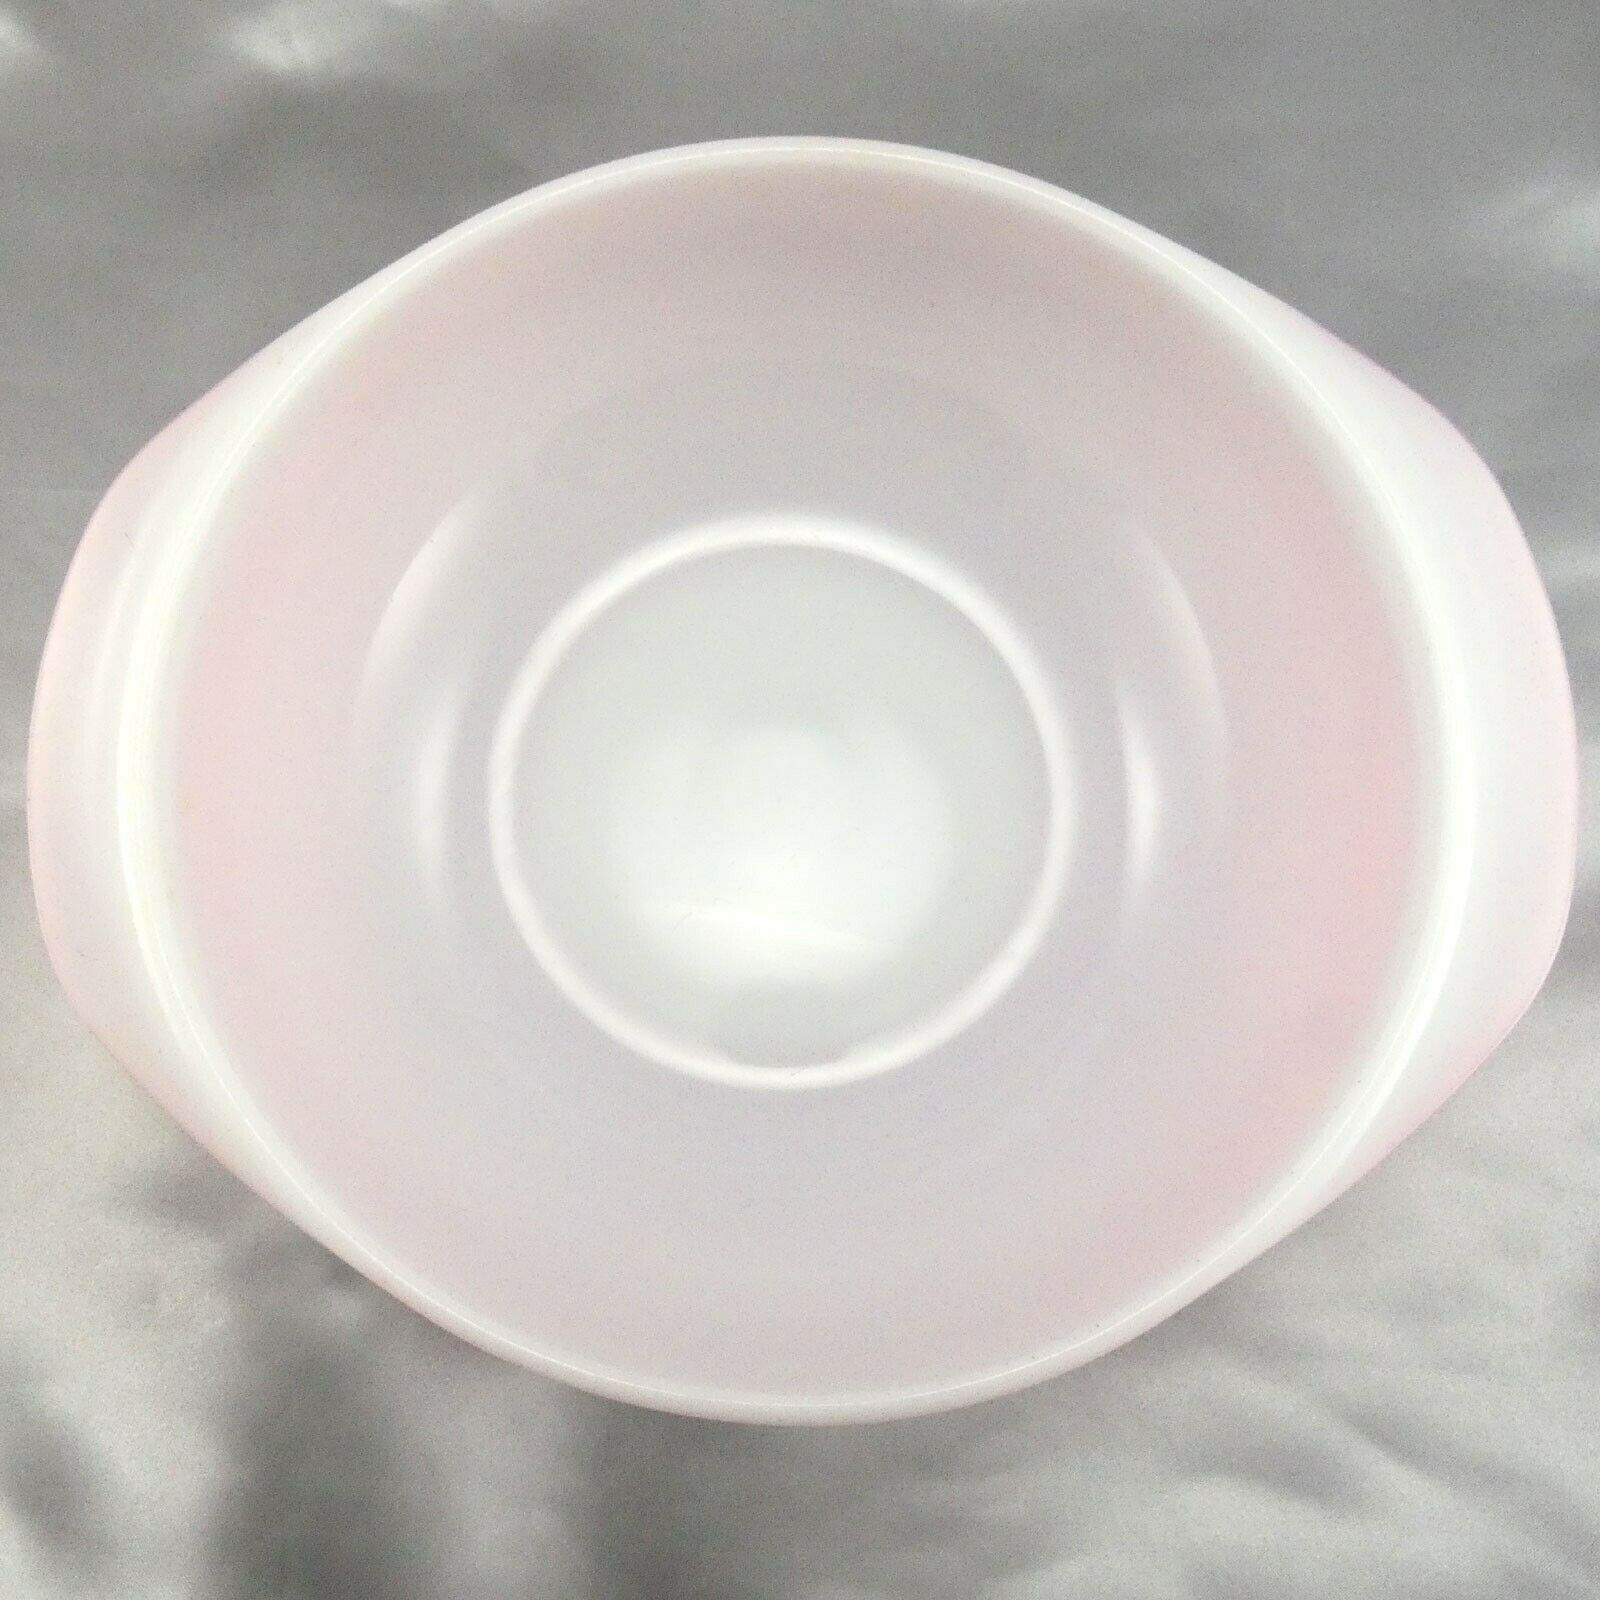 Pyrex 024 Pink Milk Glass Casserole Dish 2qt Serving Bowl ~ Made in the USA image 5